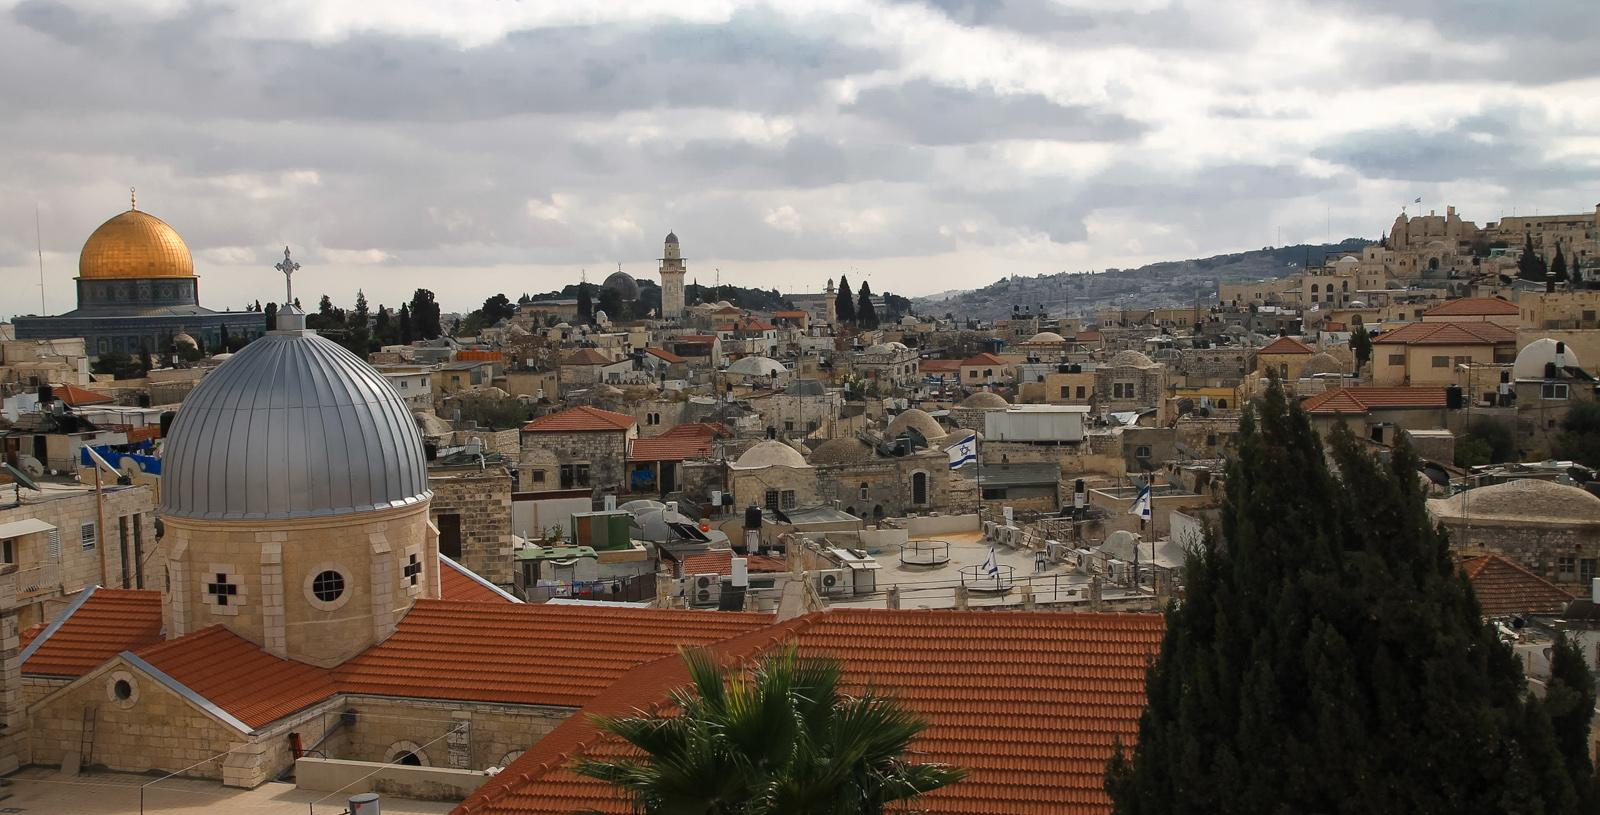 View over the Old Town of Jerusalem